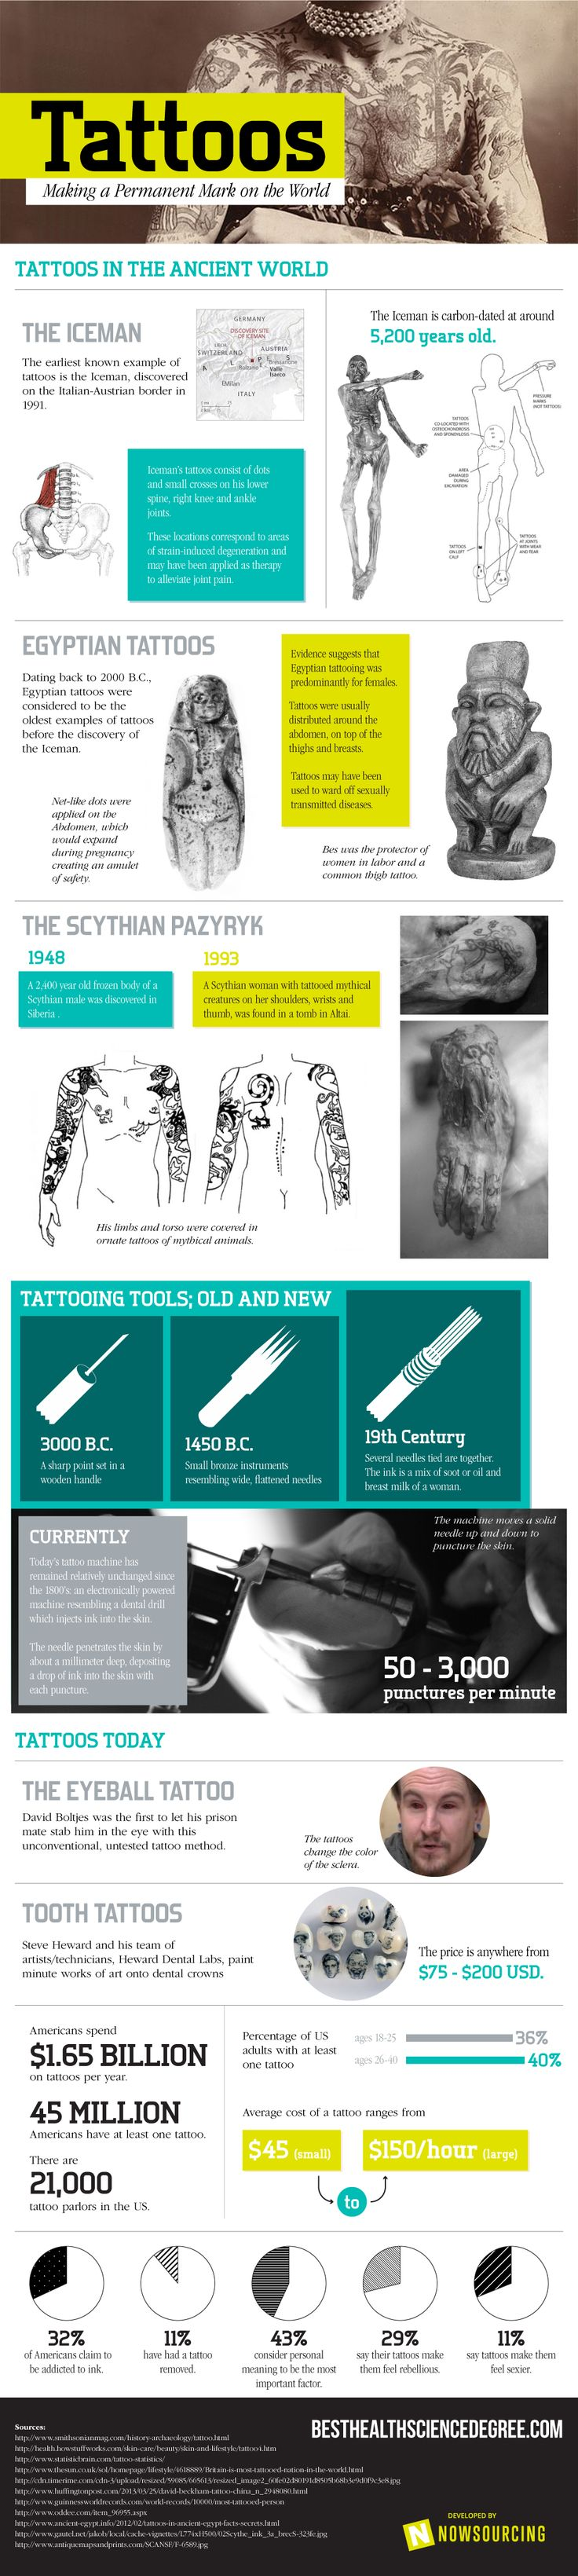 This infographic provides a deeper look into the history of tattoos and other interesting facts about body art.